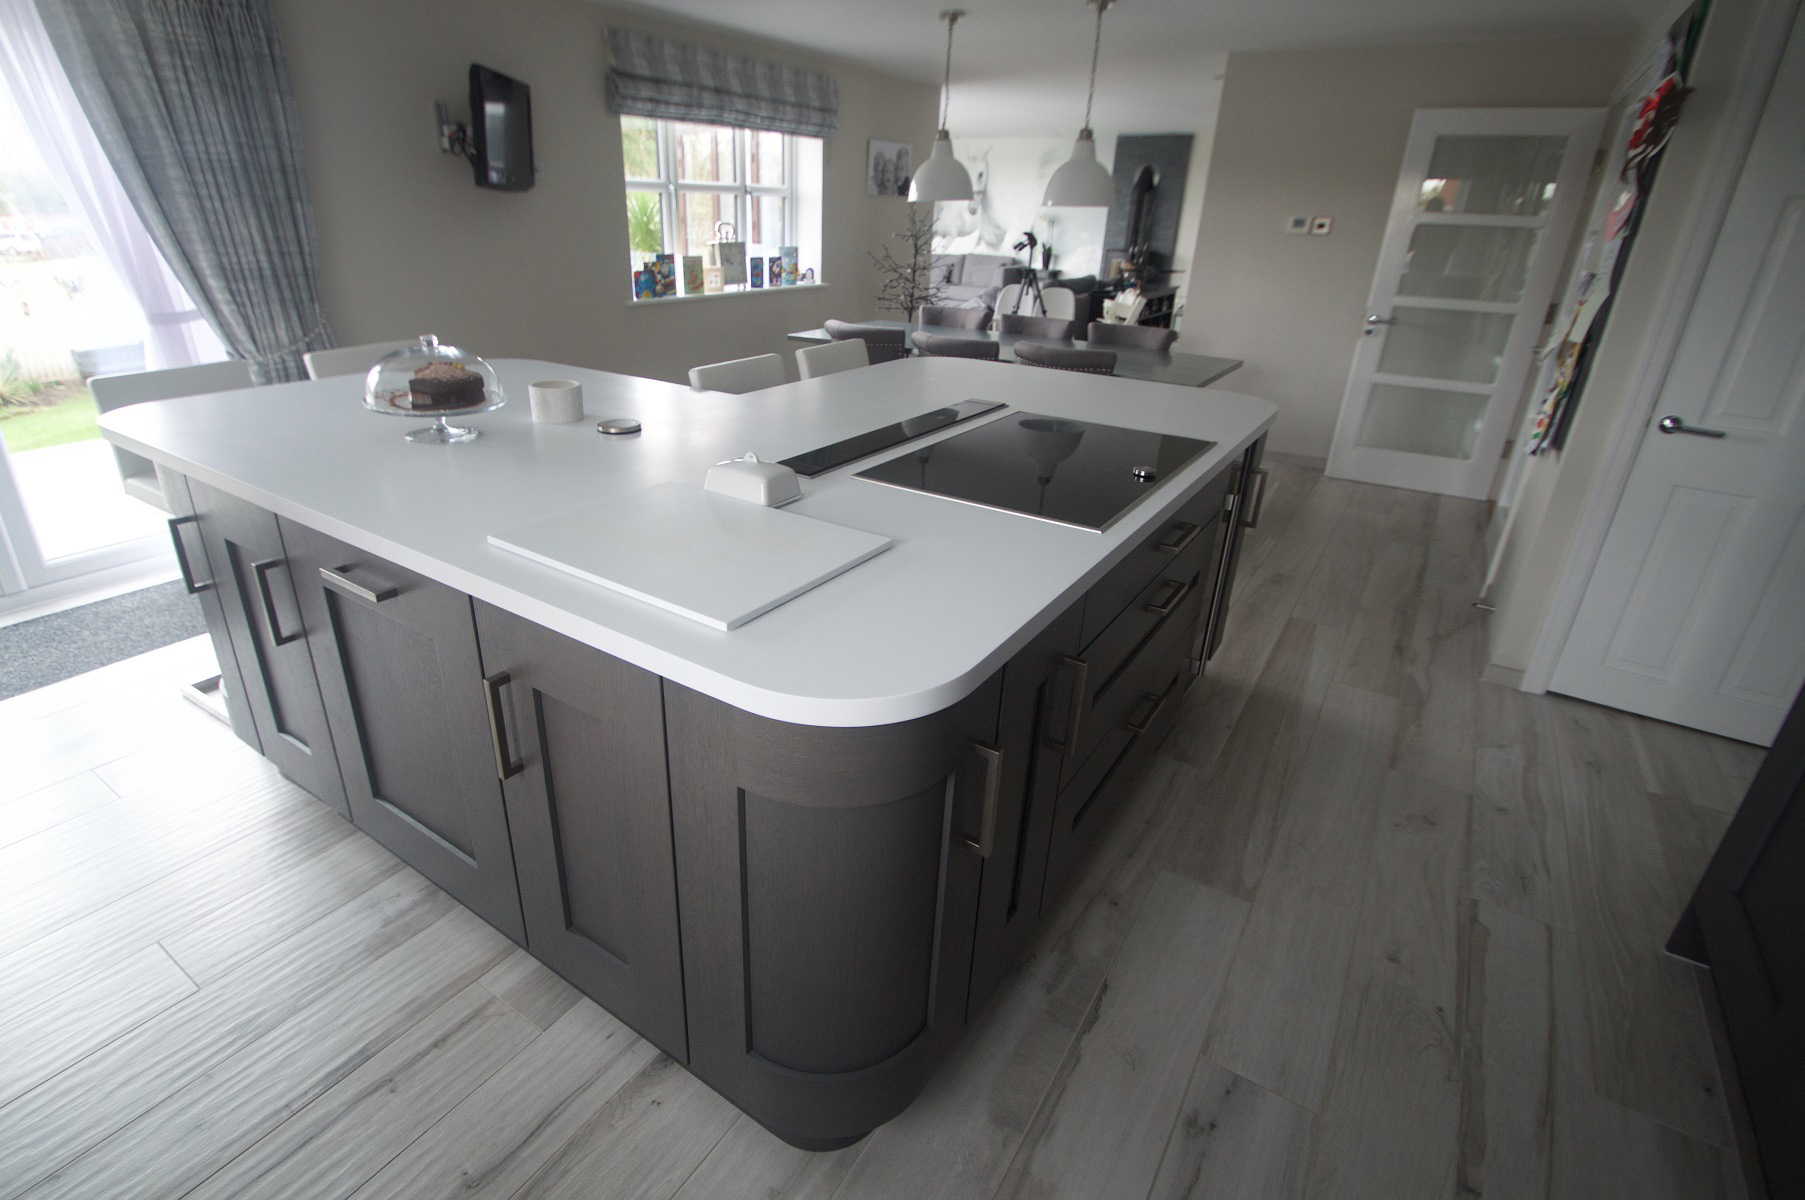 ... Clonmel Anthracite Kitchen Island Featuring Curved Doors, Project By Elite  Kitchens Of Manchester